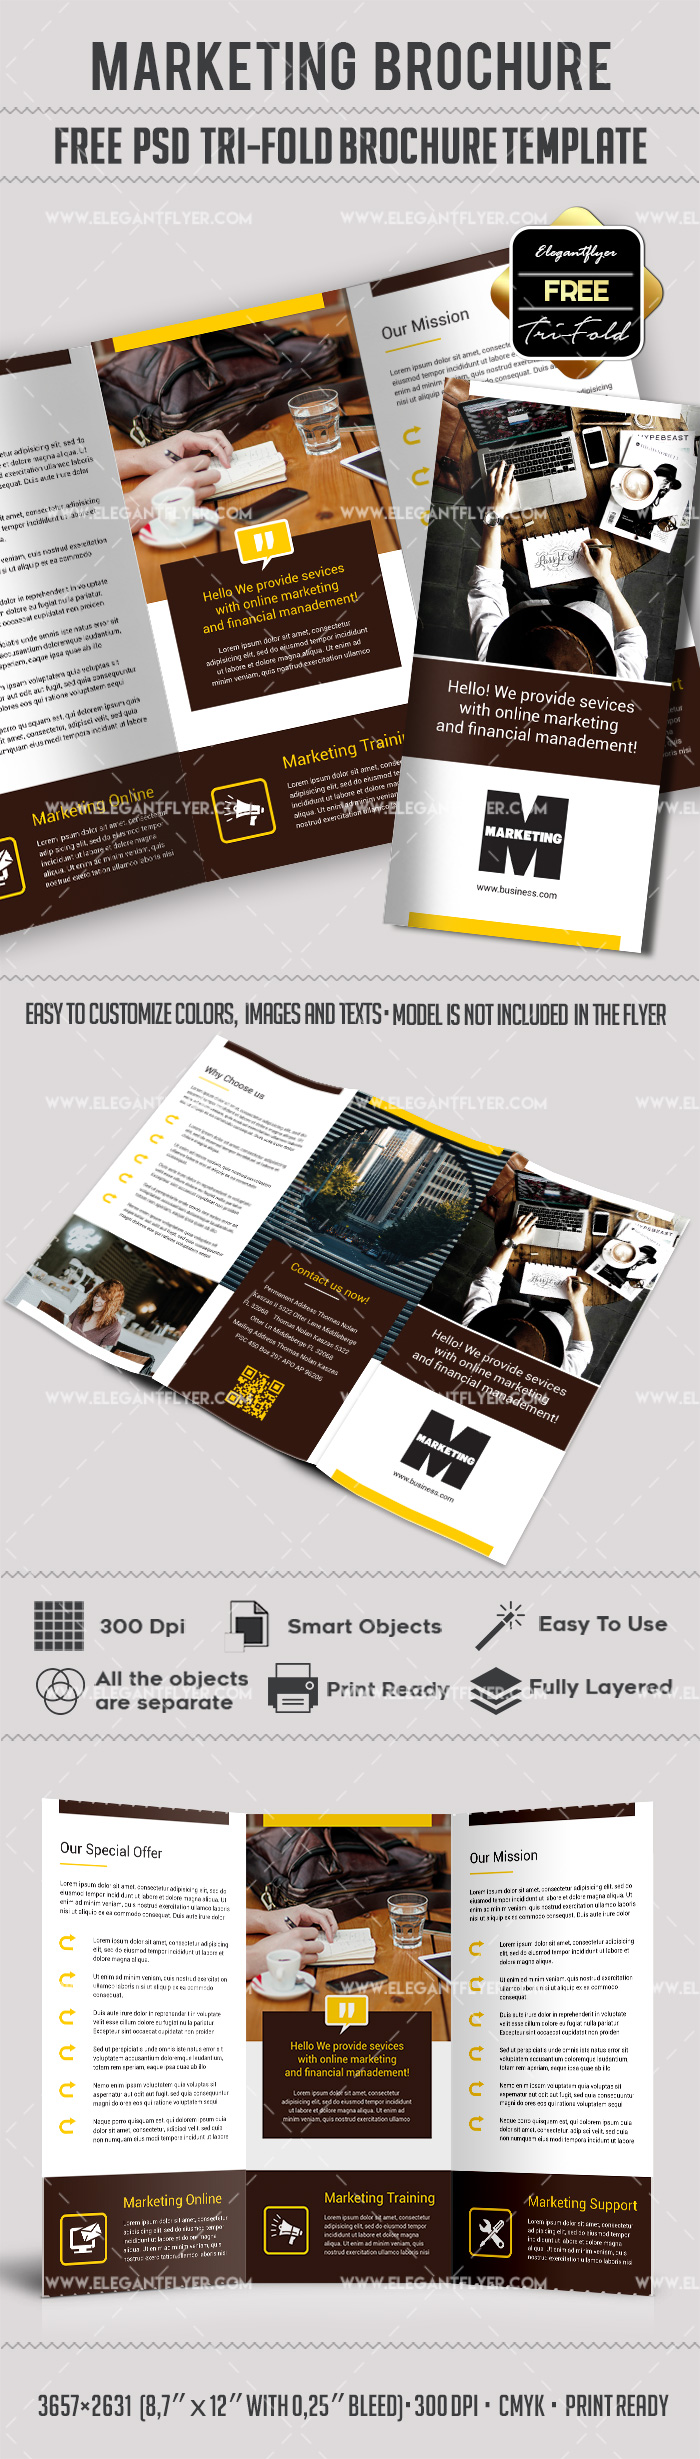 Marketing free tri fold psd brochure template by for Brochure design psd templates